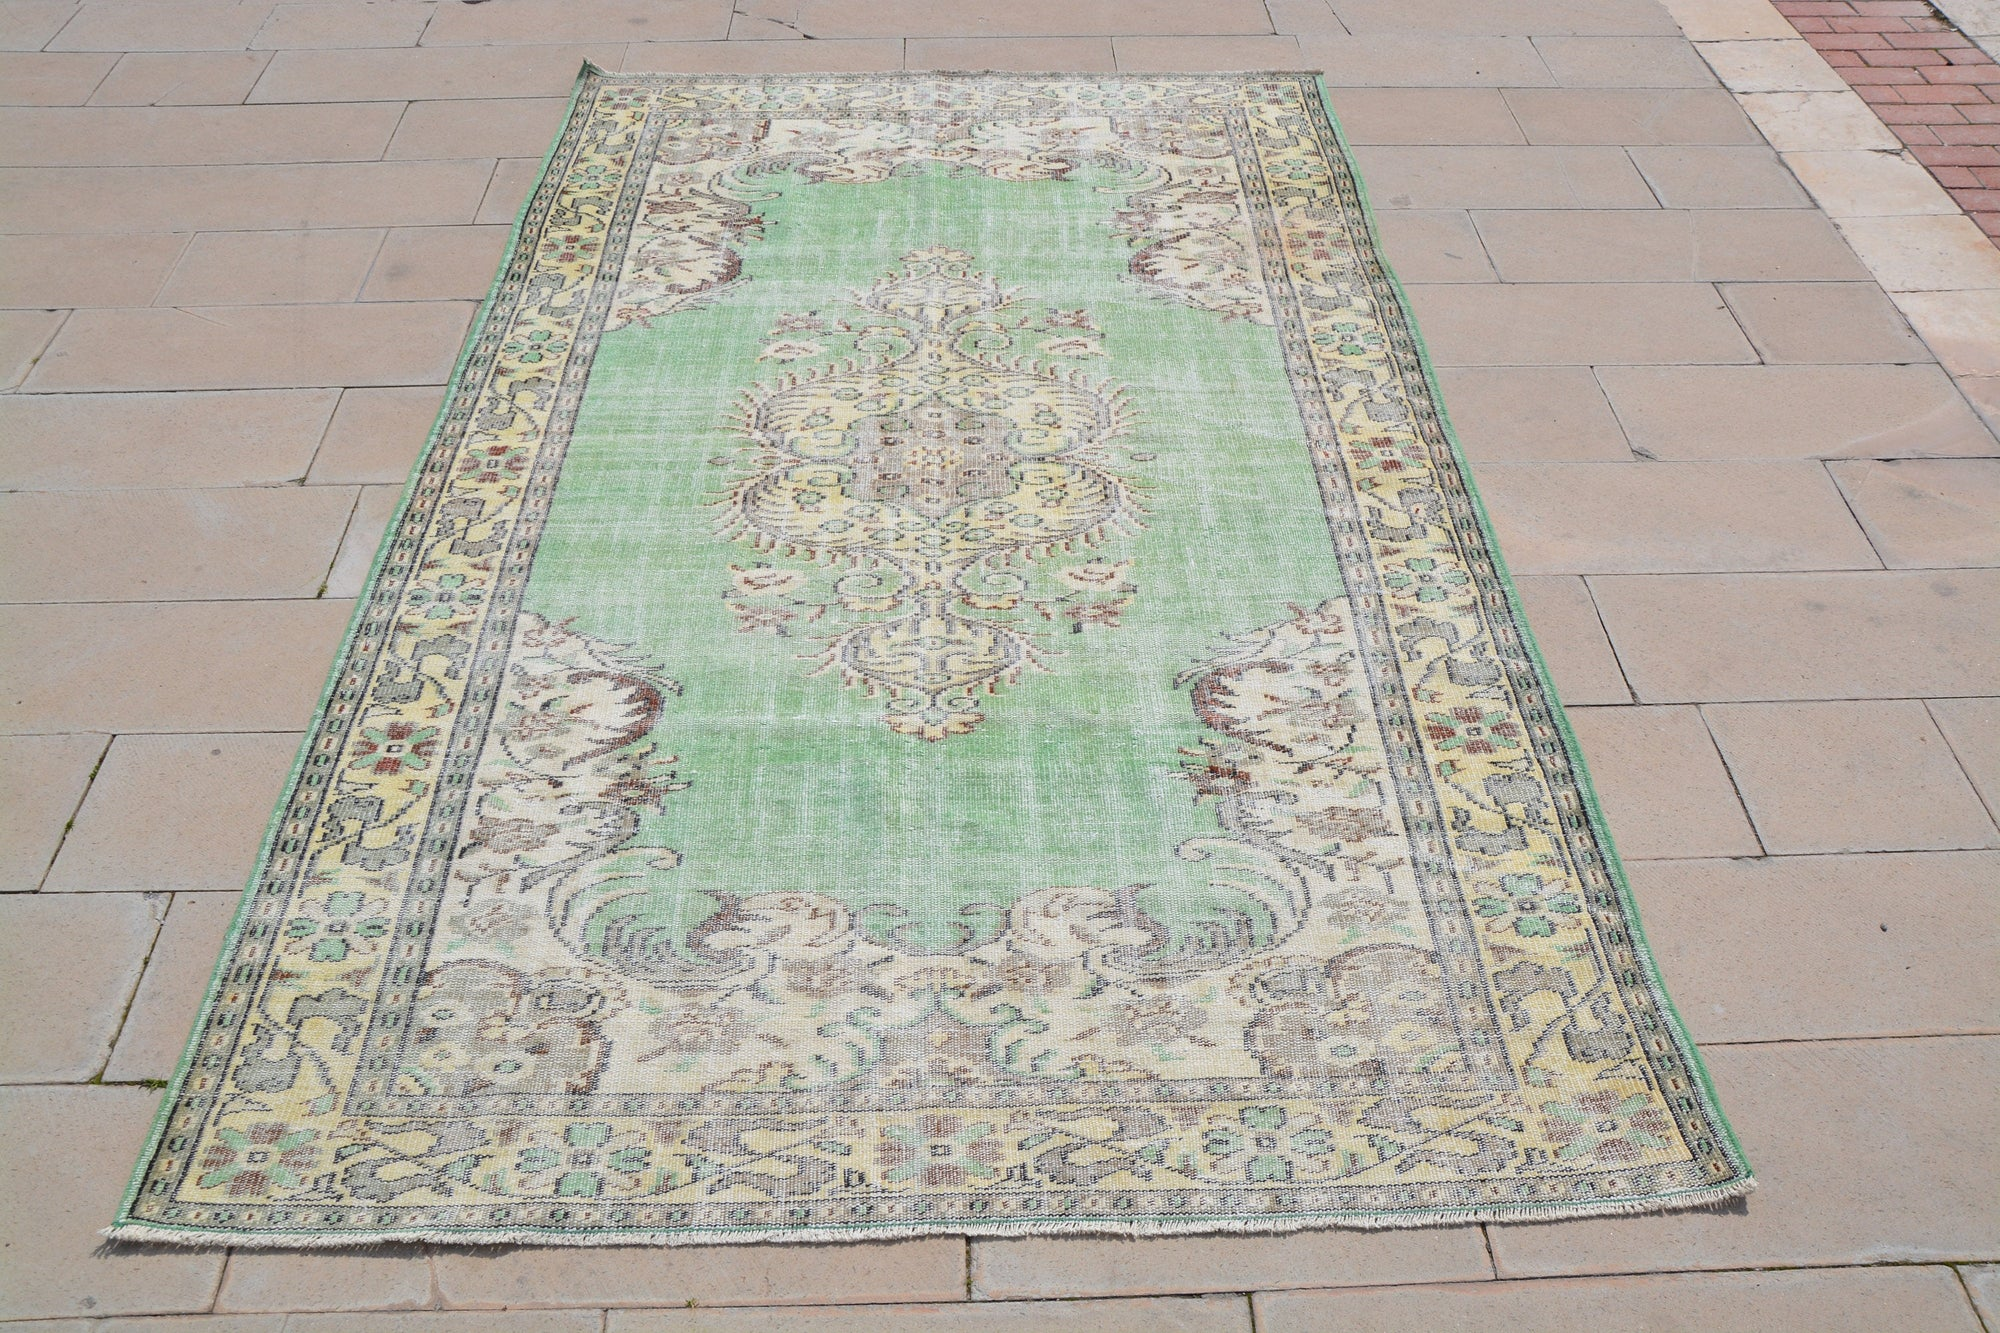 Turkey Rug, Afghan  Turkish Carpets for Sale, Green Oriental  Turkish Area Rugs, Turkish Carpets for Sale,         6 x 9.8  Feet AG1005